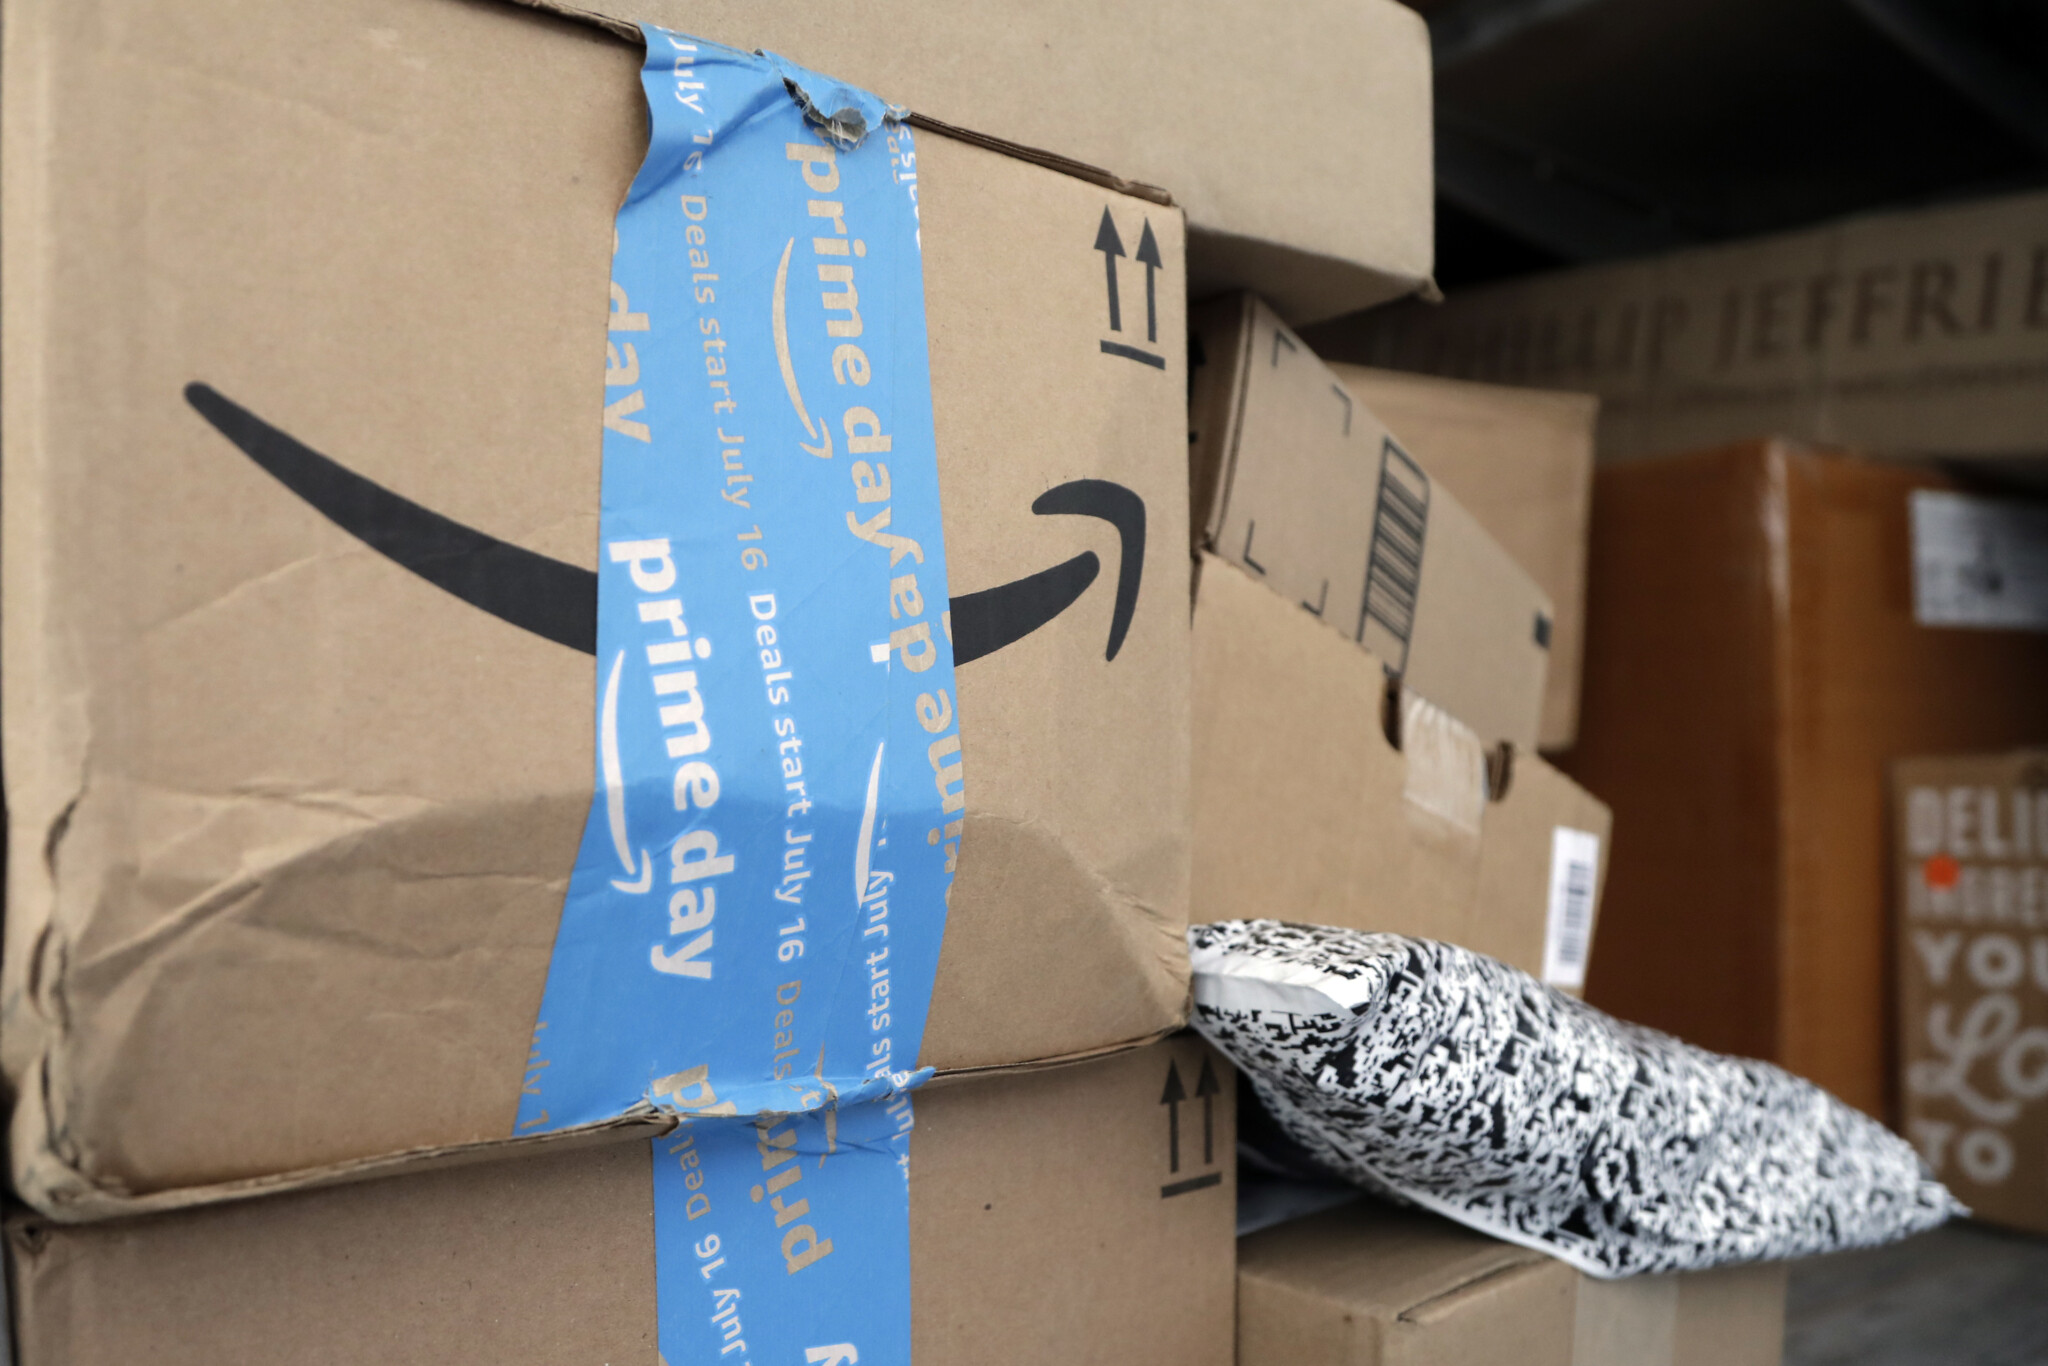 Amazon to provide free shipping to Palestinians after PA